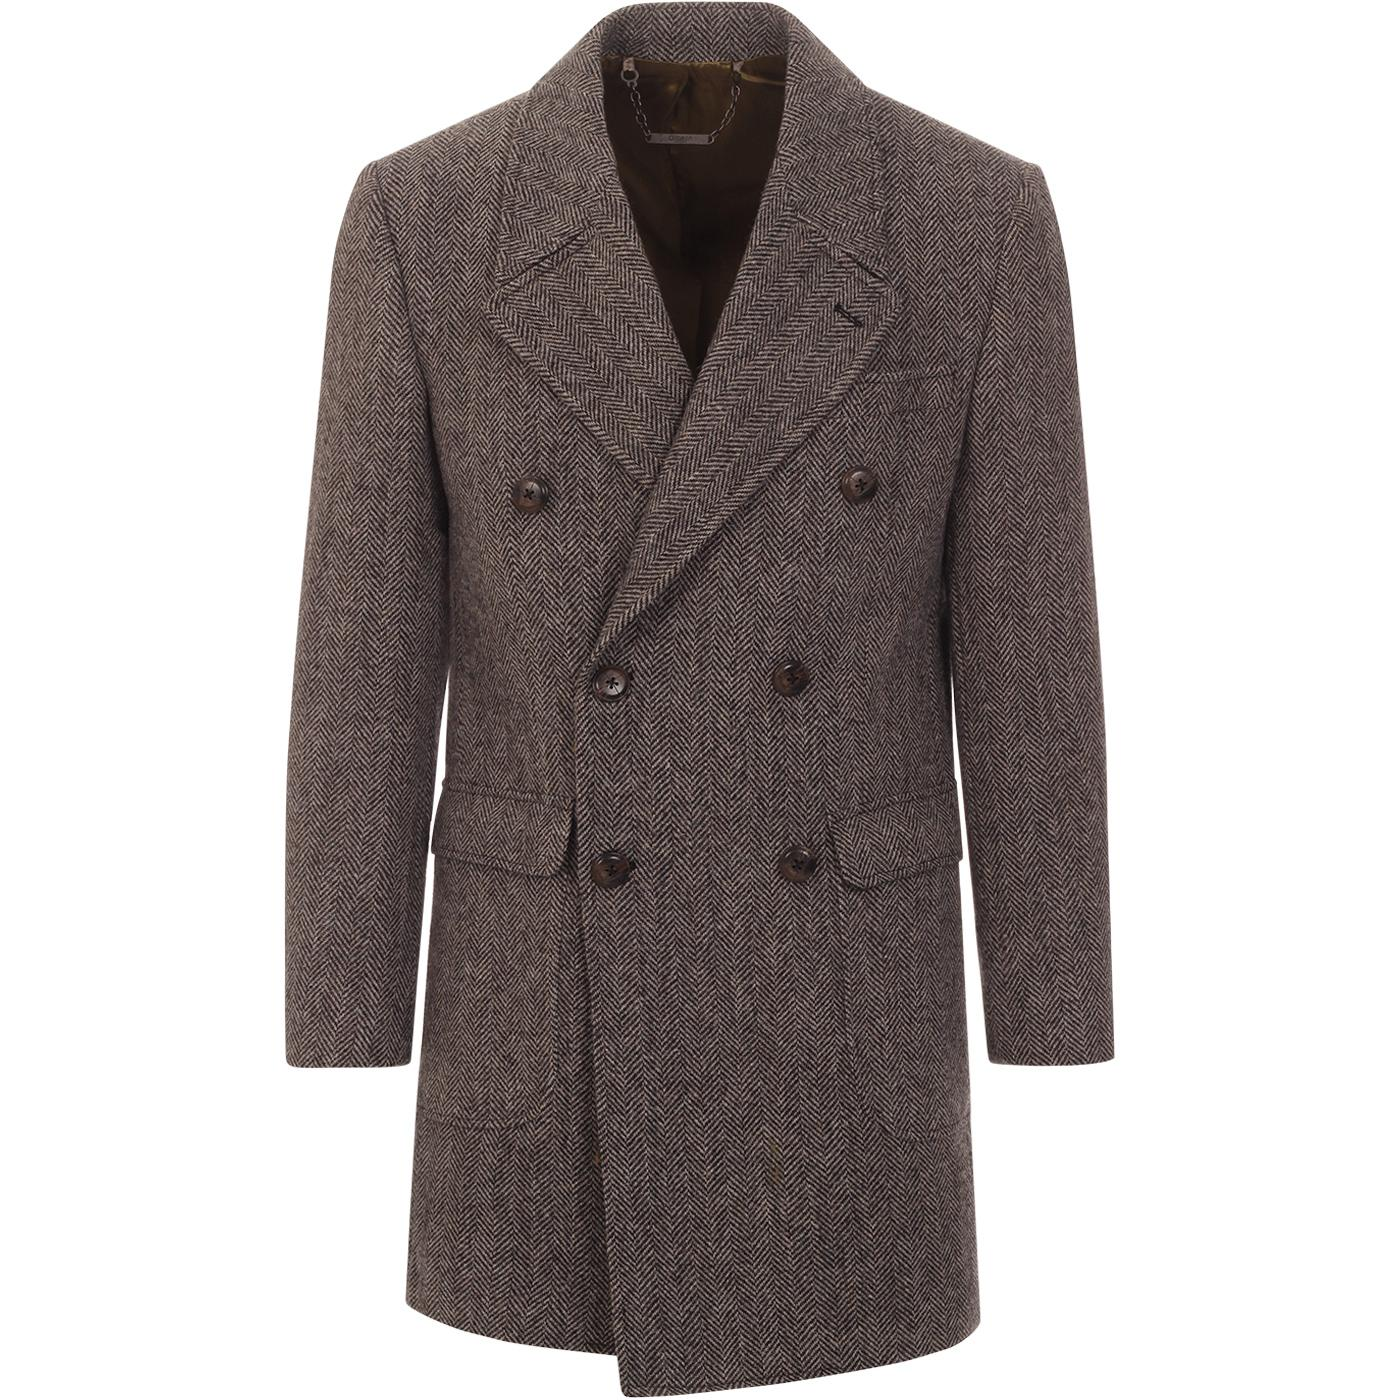 GIBSON LONDON Mod Double Breasted Herringbone Coat